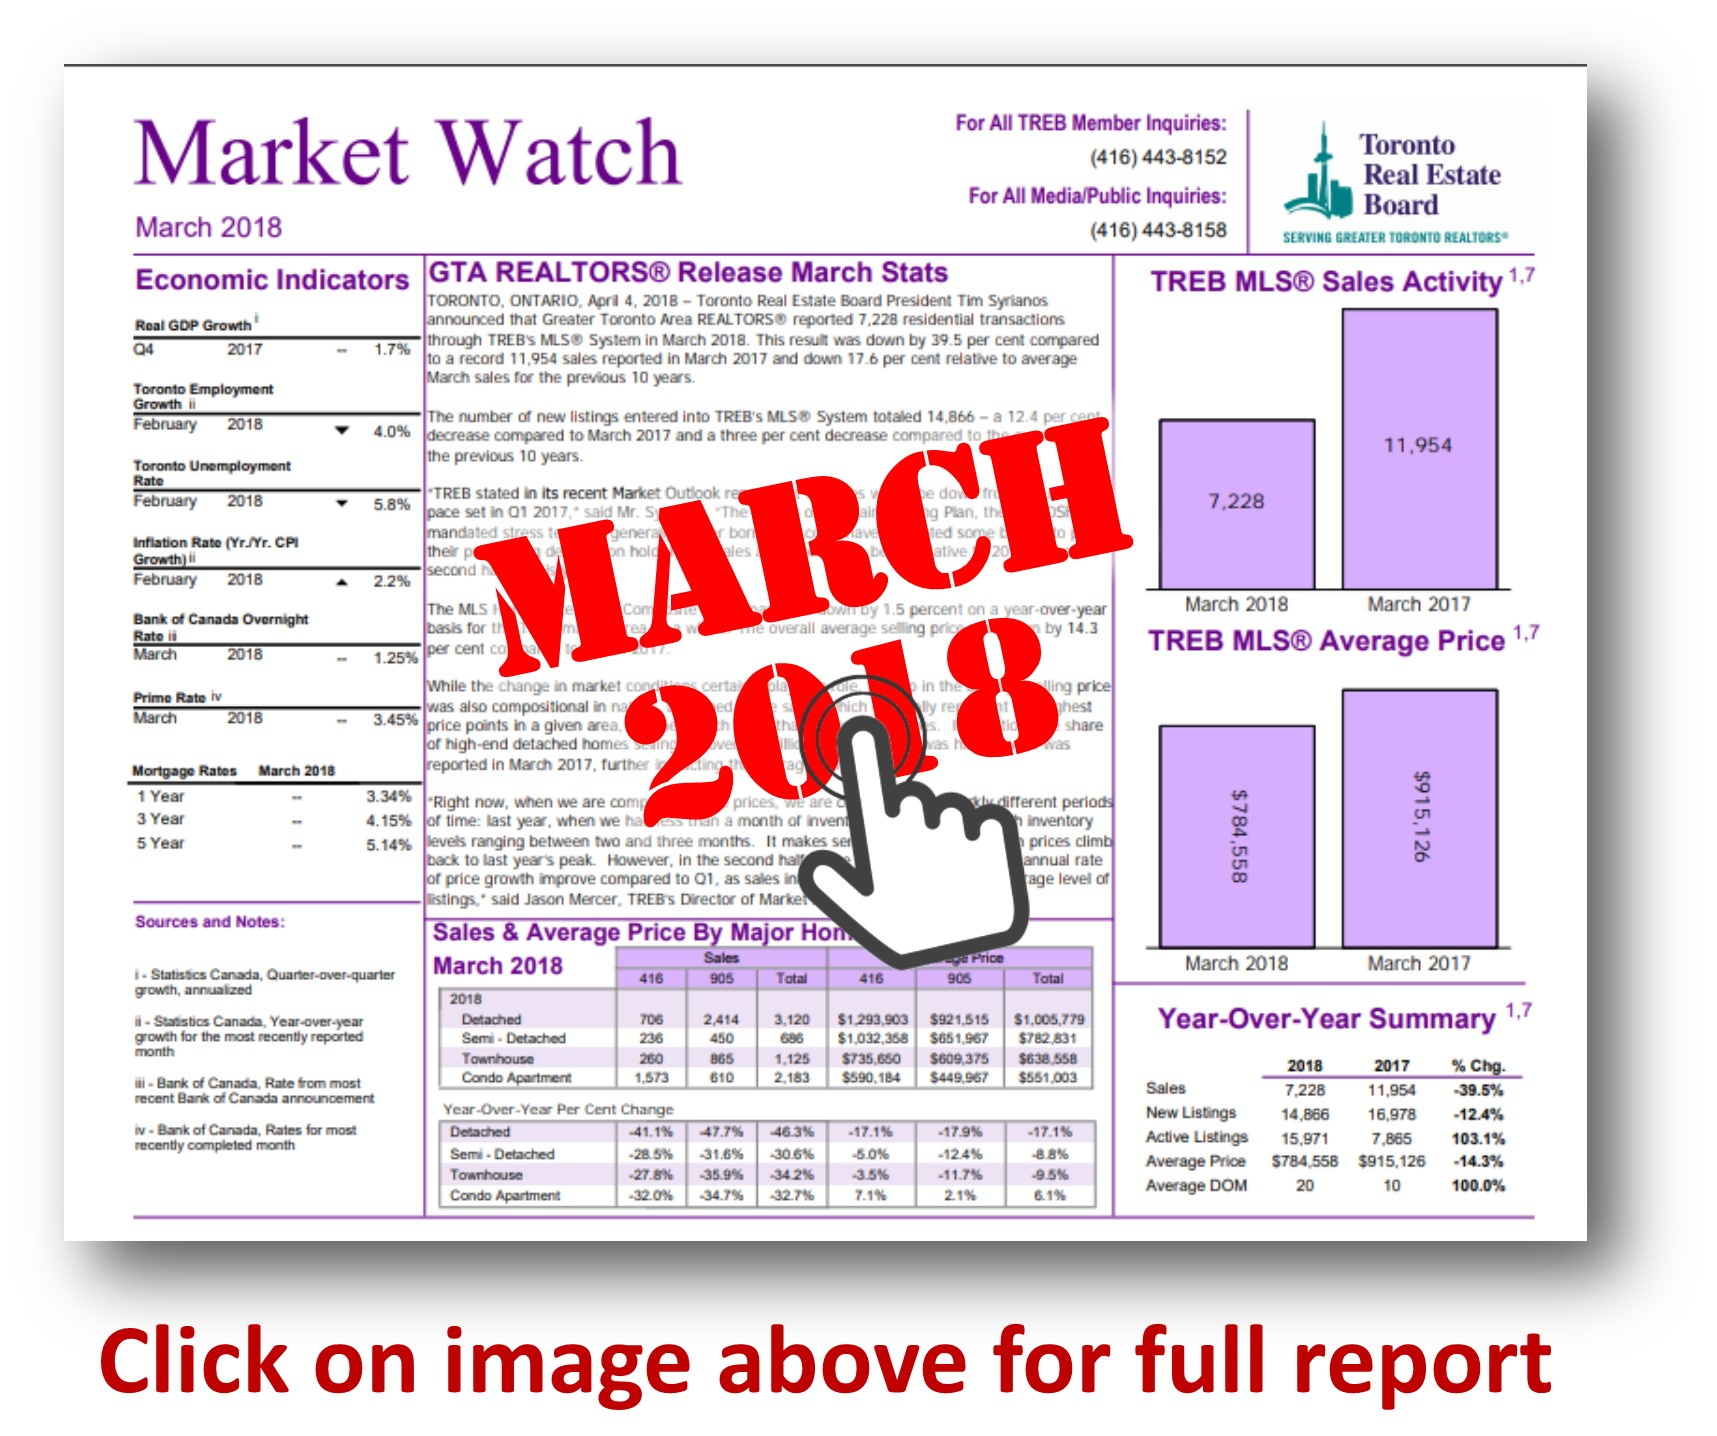 TREB MW FRONT PAGE March 2018.jpg